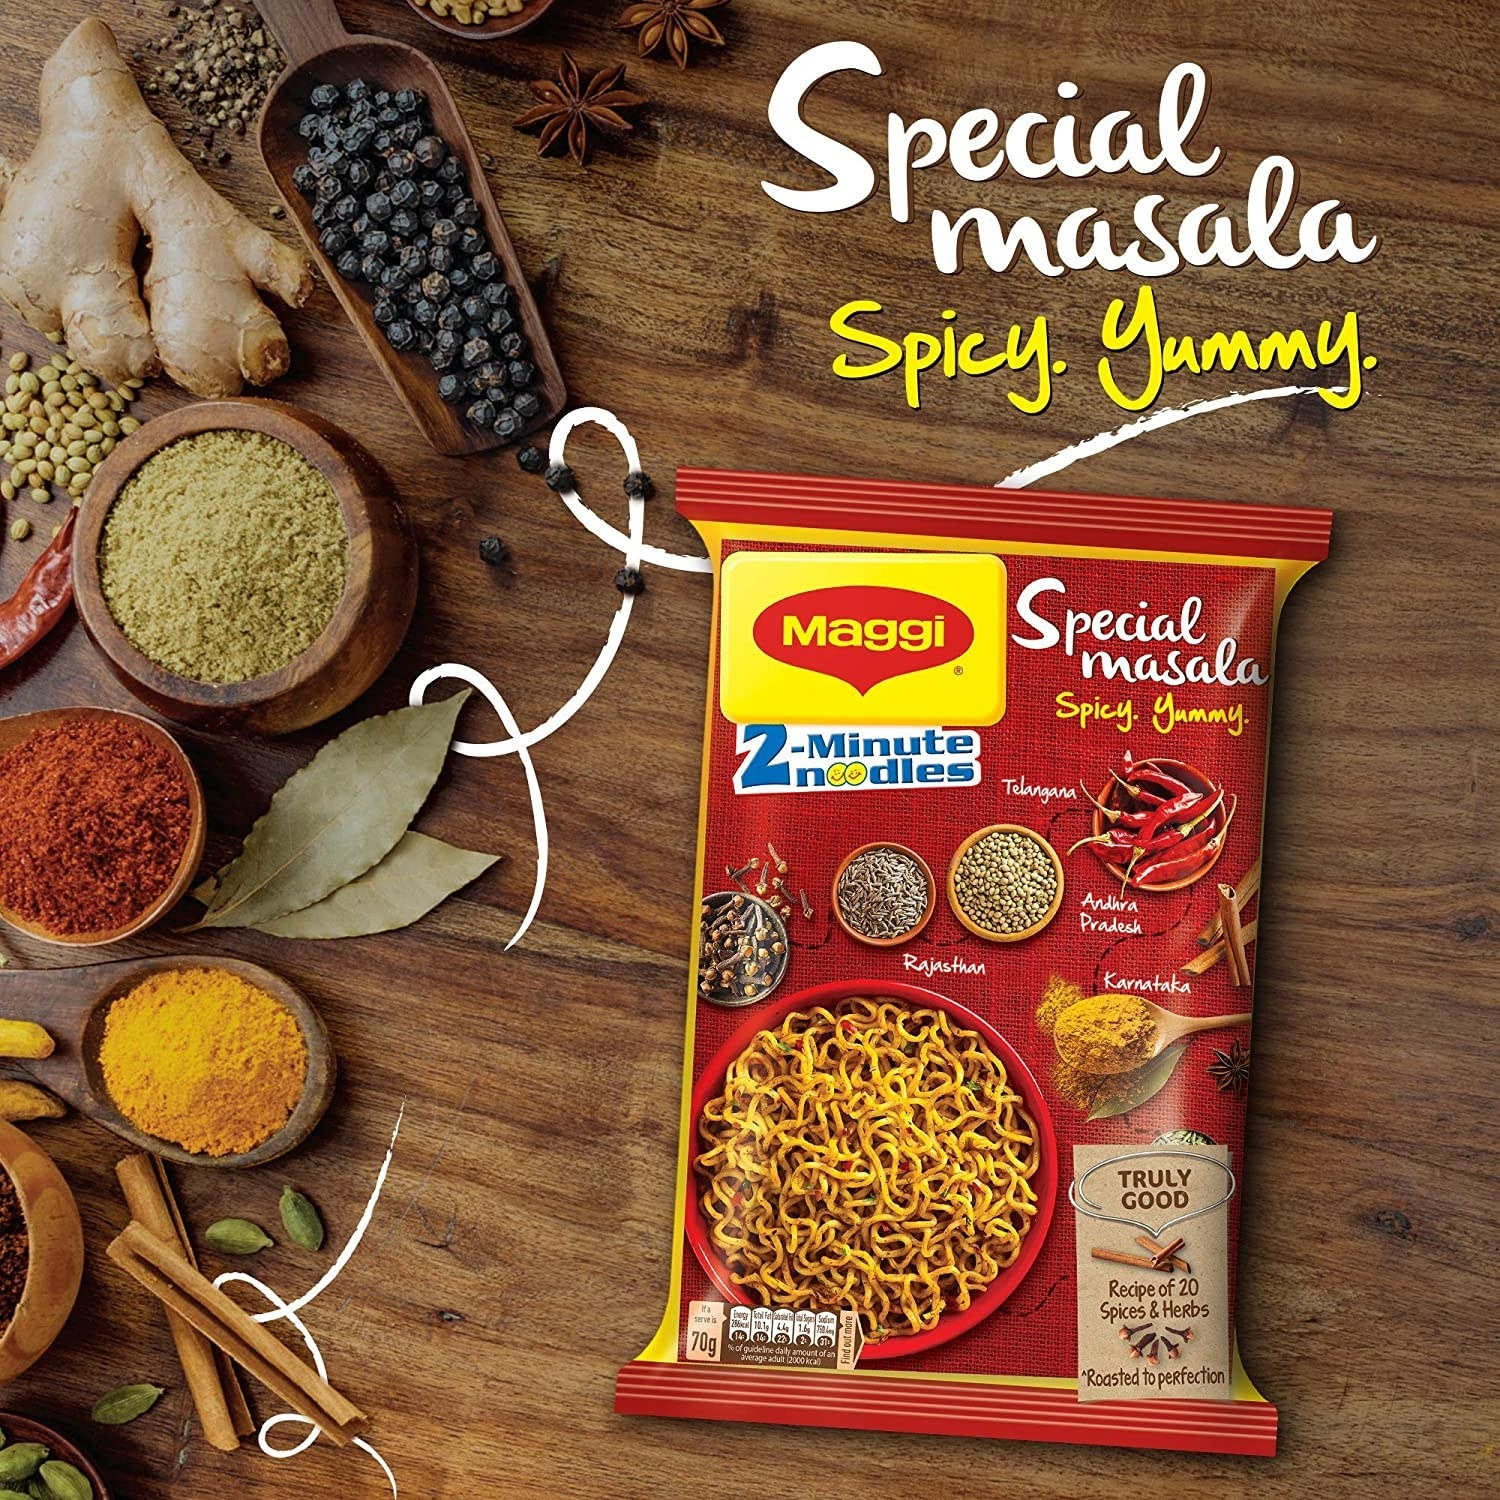 Maggi packet surrounded by spices